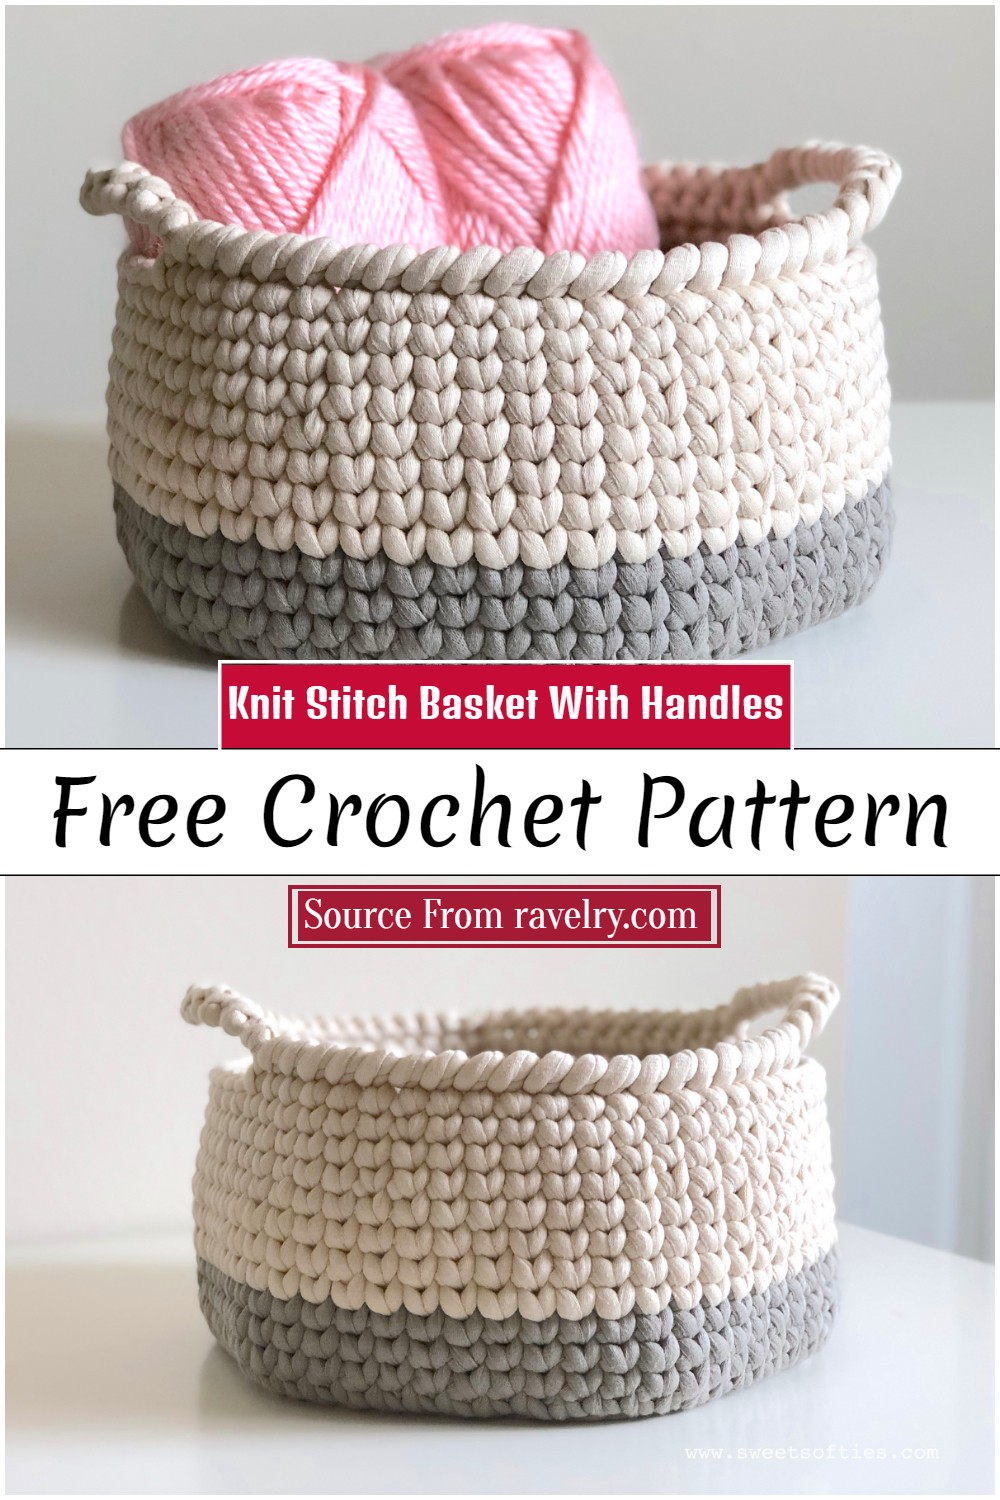 Crochet Knit Stitch Basket With Handles Pattern